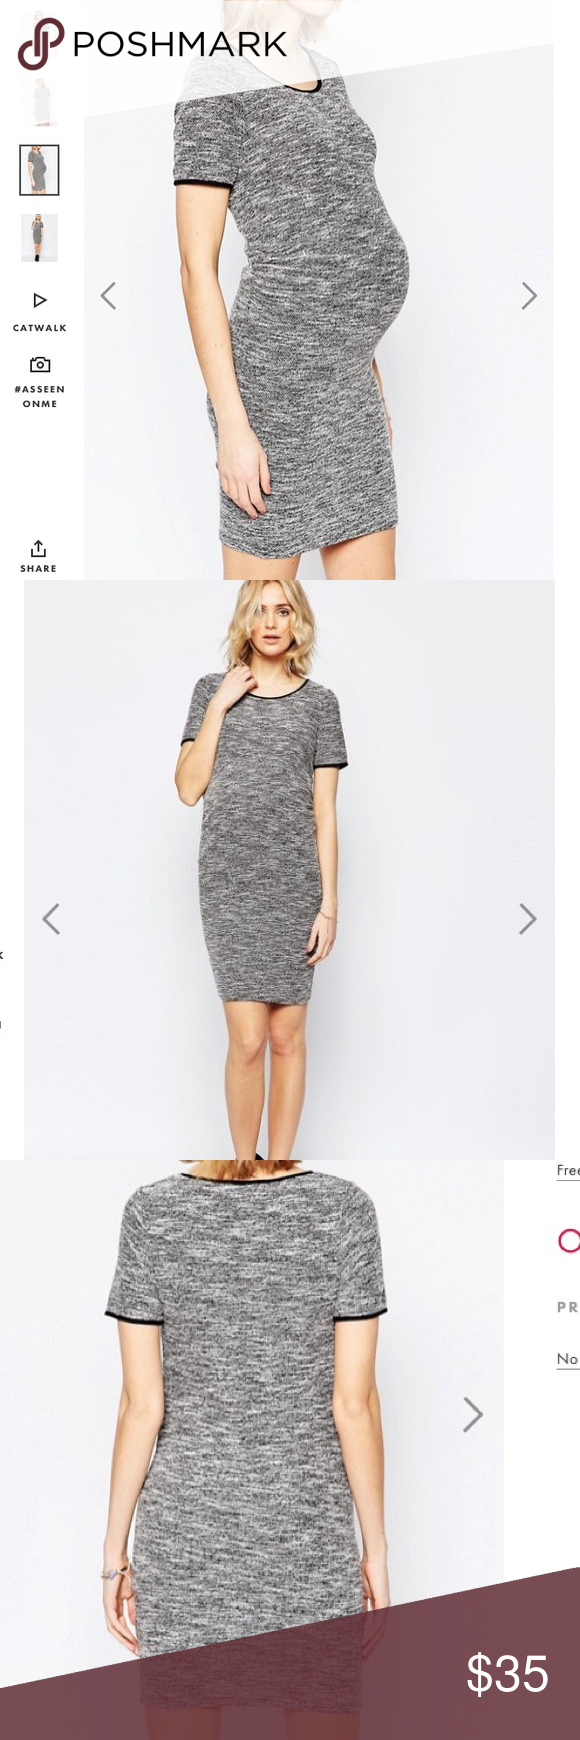 Nwt asos soft maternity dress 6 boutique asos colors and asos one day sale nwt asos soft maternity dress 6 super soft grey color with a ombrellifo Choice Image